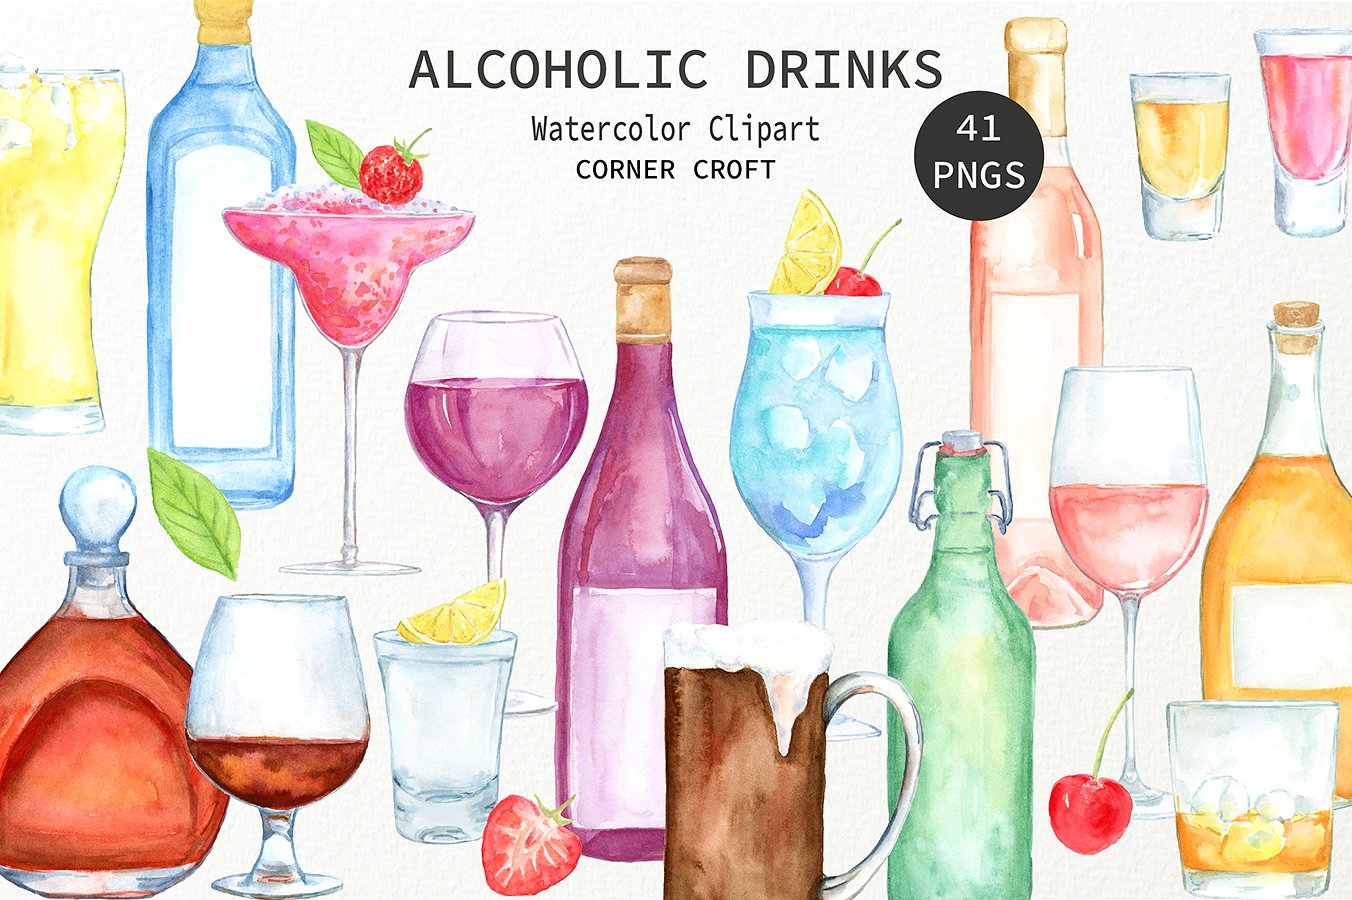 Watercolor drinks illustrations creative. Champaign clipart alcoholic drink